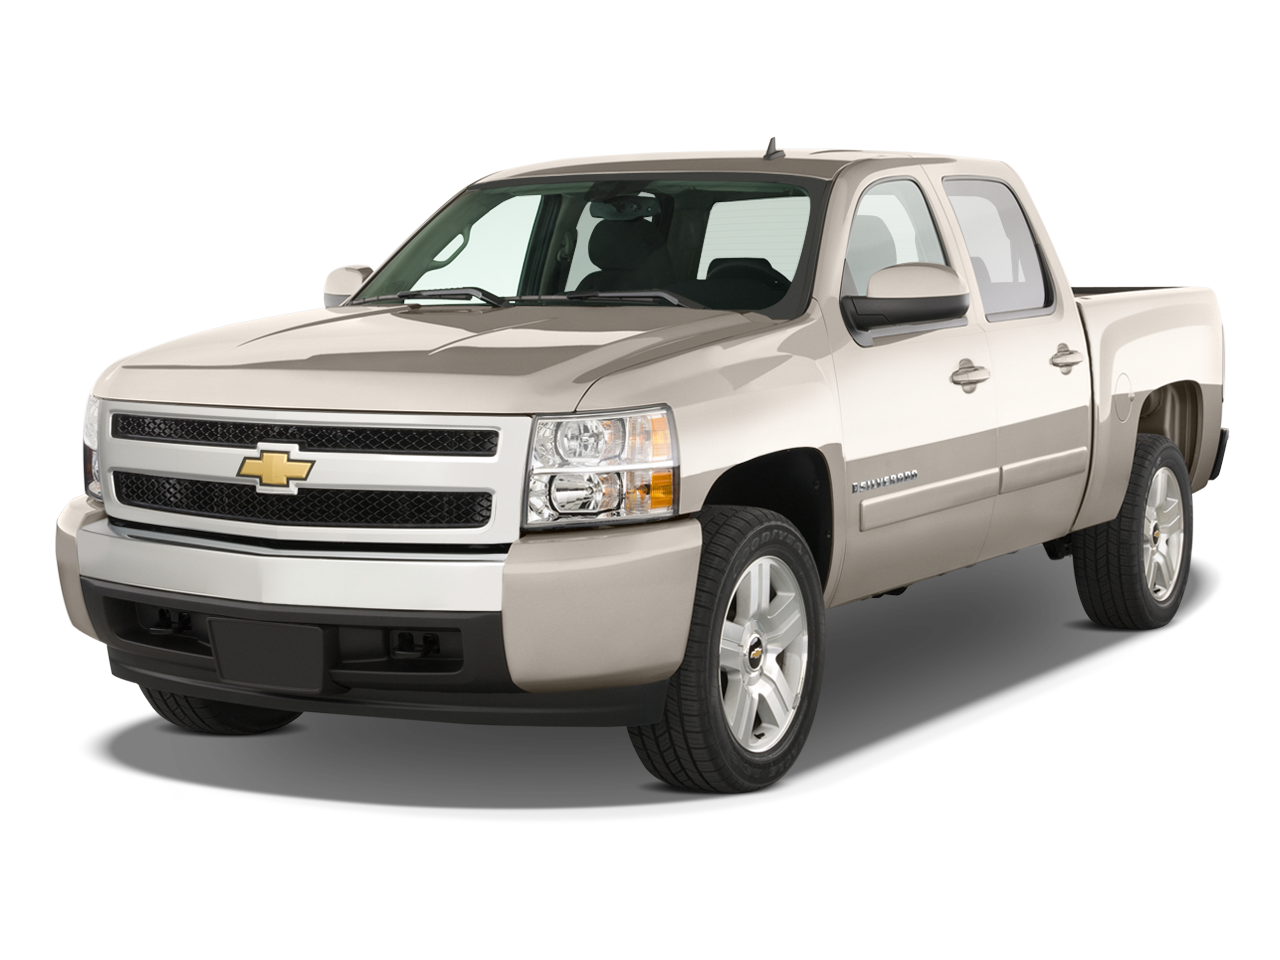 2009 chevrolet silverado hybrid chevy hybrid pickup. Black Bedroom Furniture Sets. Home Design Ideas